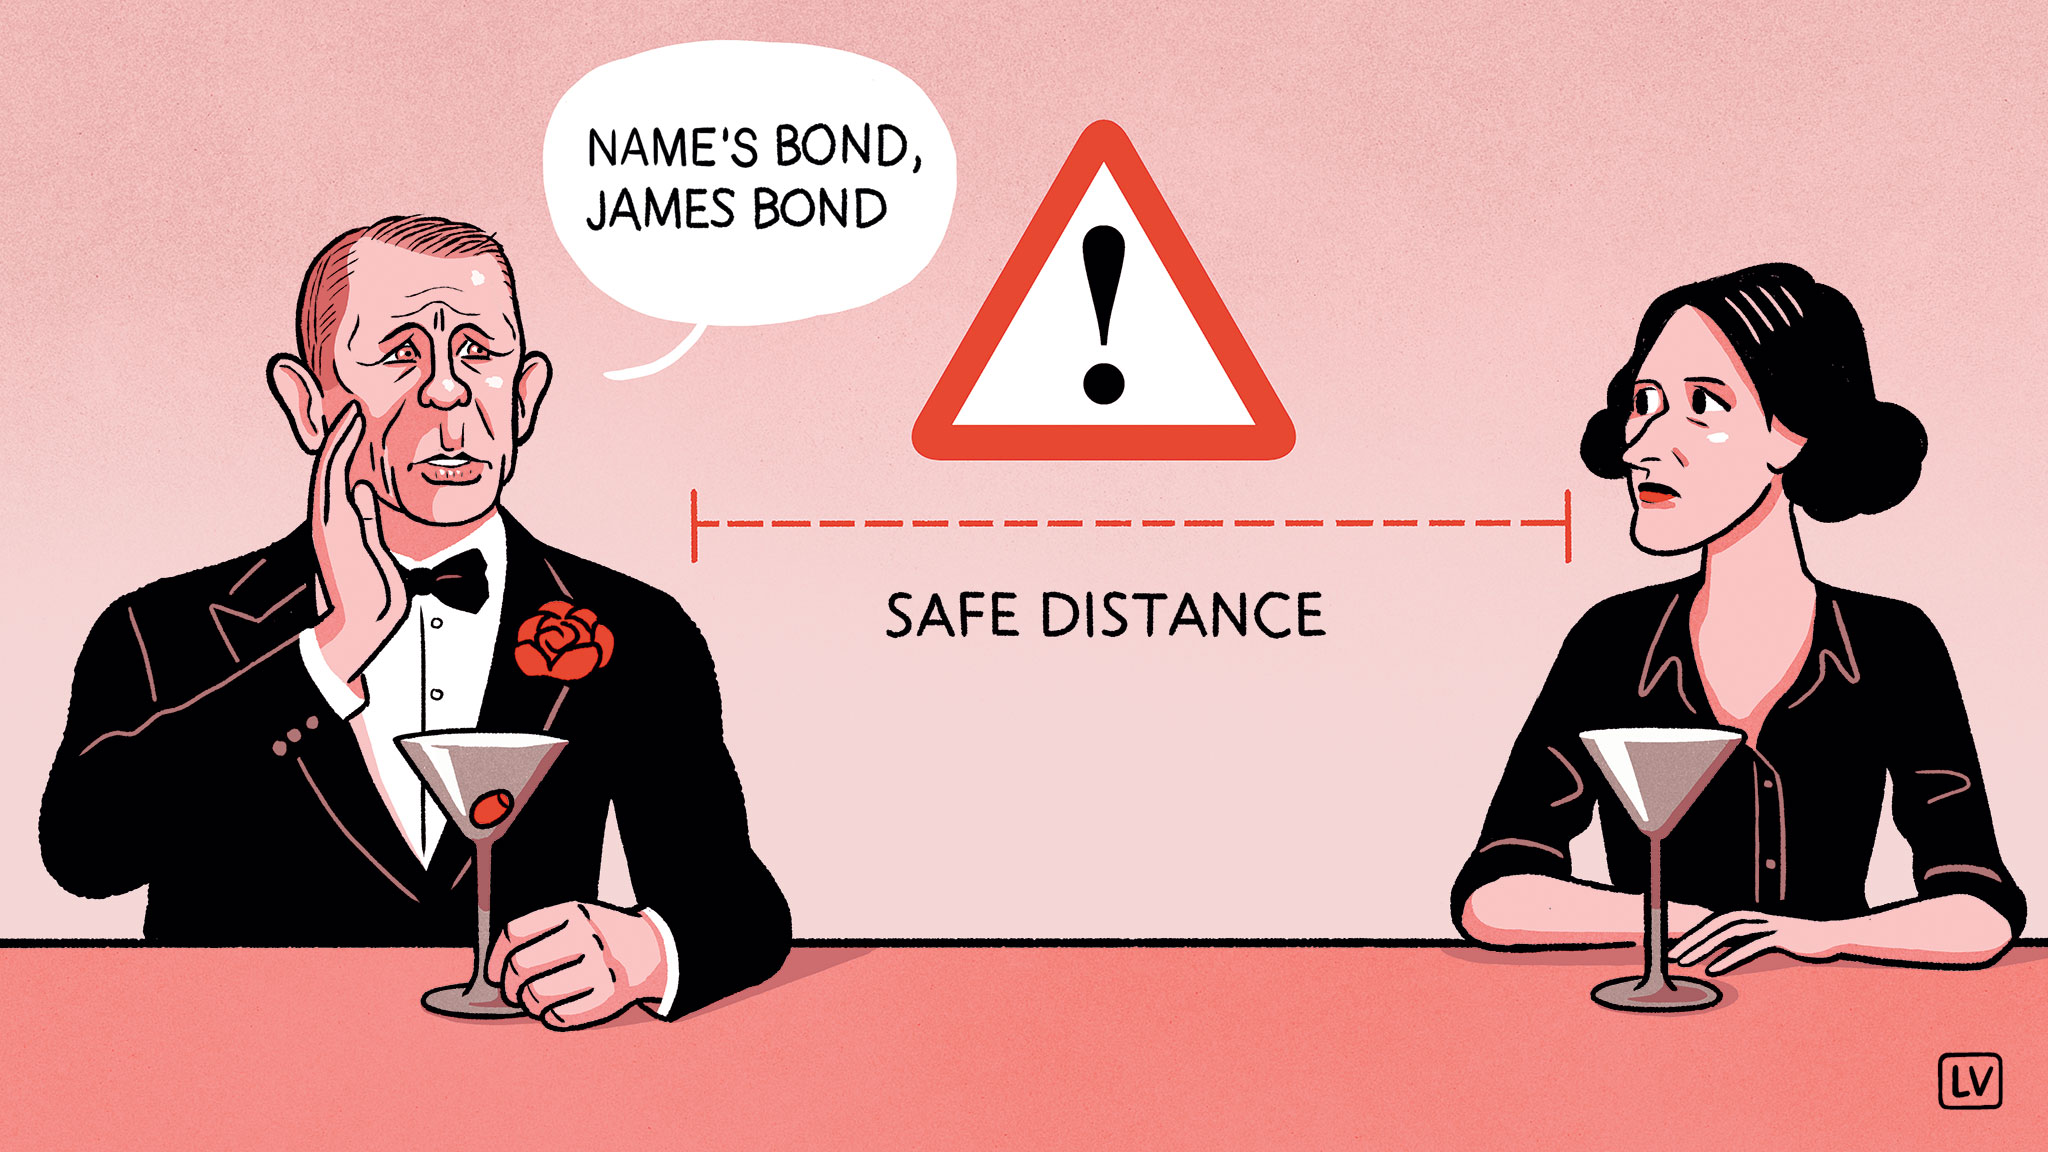 Decaf Latte Frothed Not Foamed A James Bond For Our Times